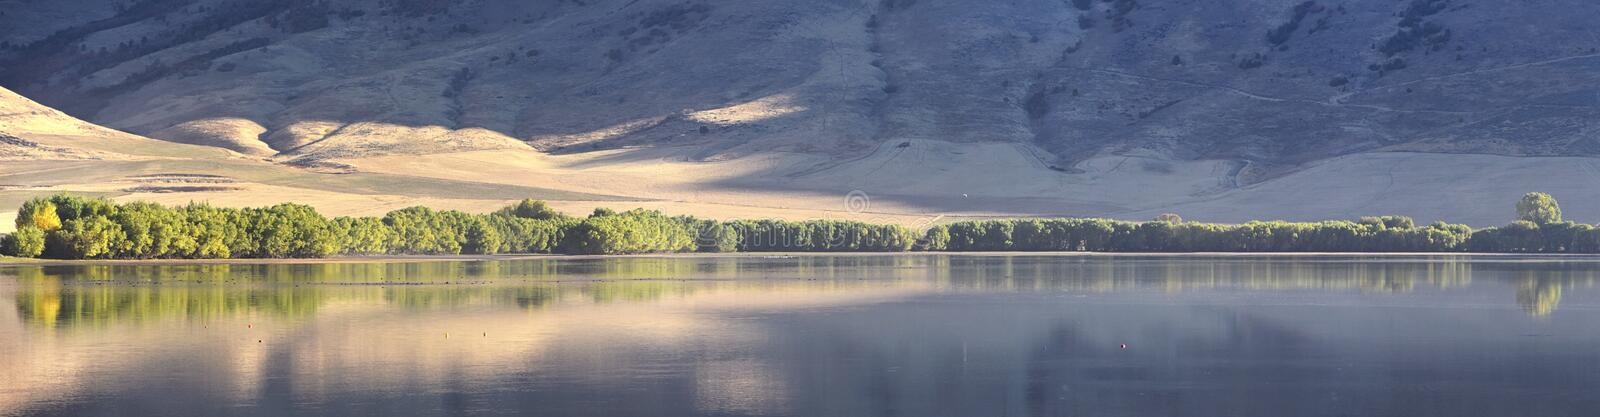 Mantua Reservoir landscape views. Mantua is a small town on the eastern edge Box Elder County, Historically known as Box Elder Val. Ley, Copenhagen, Flaxville royalty free stock photos